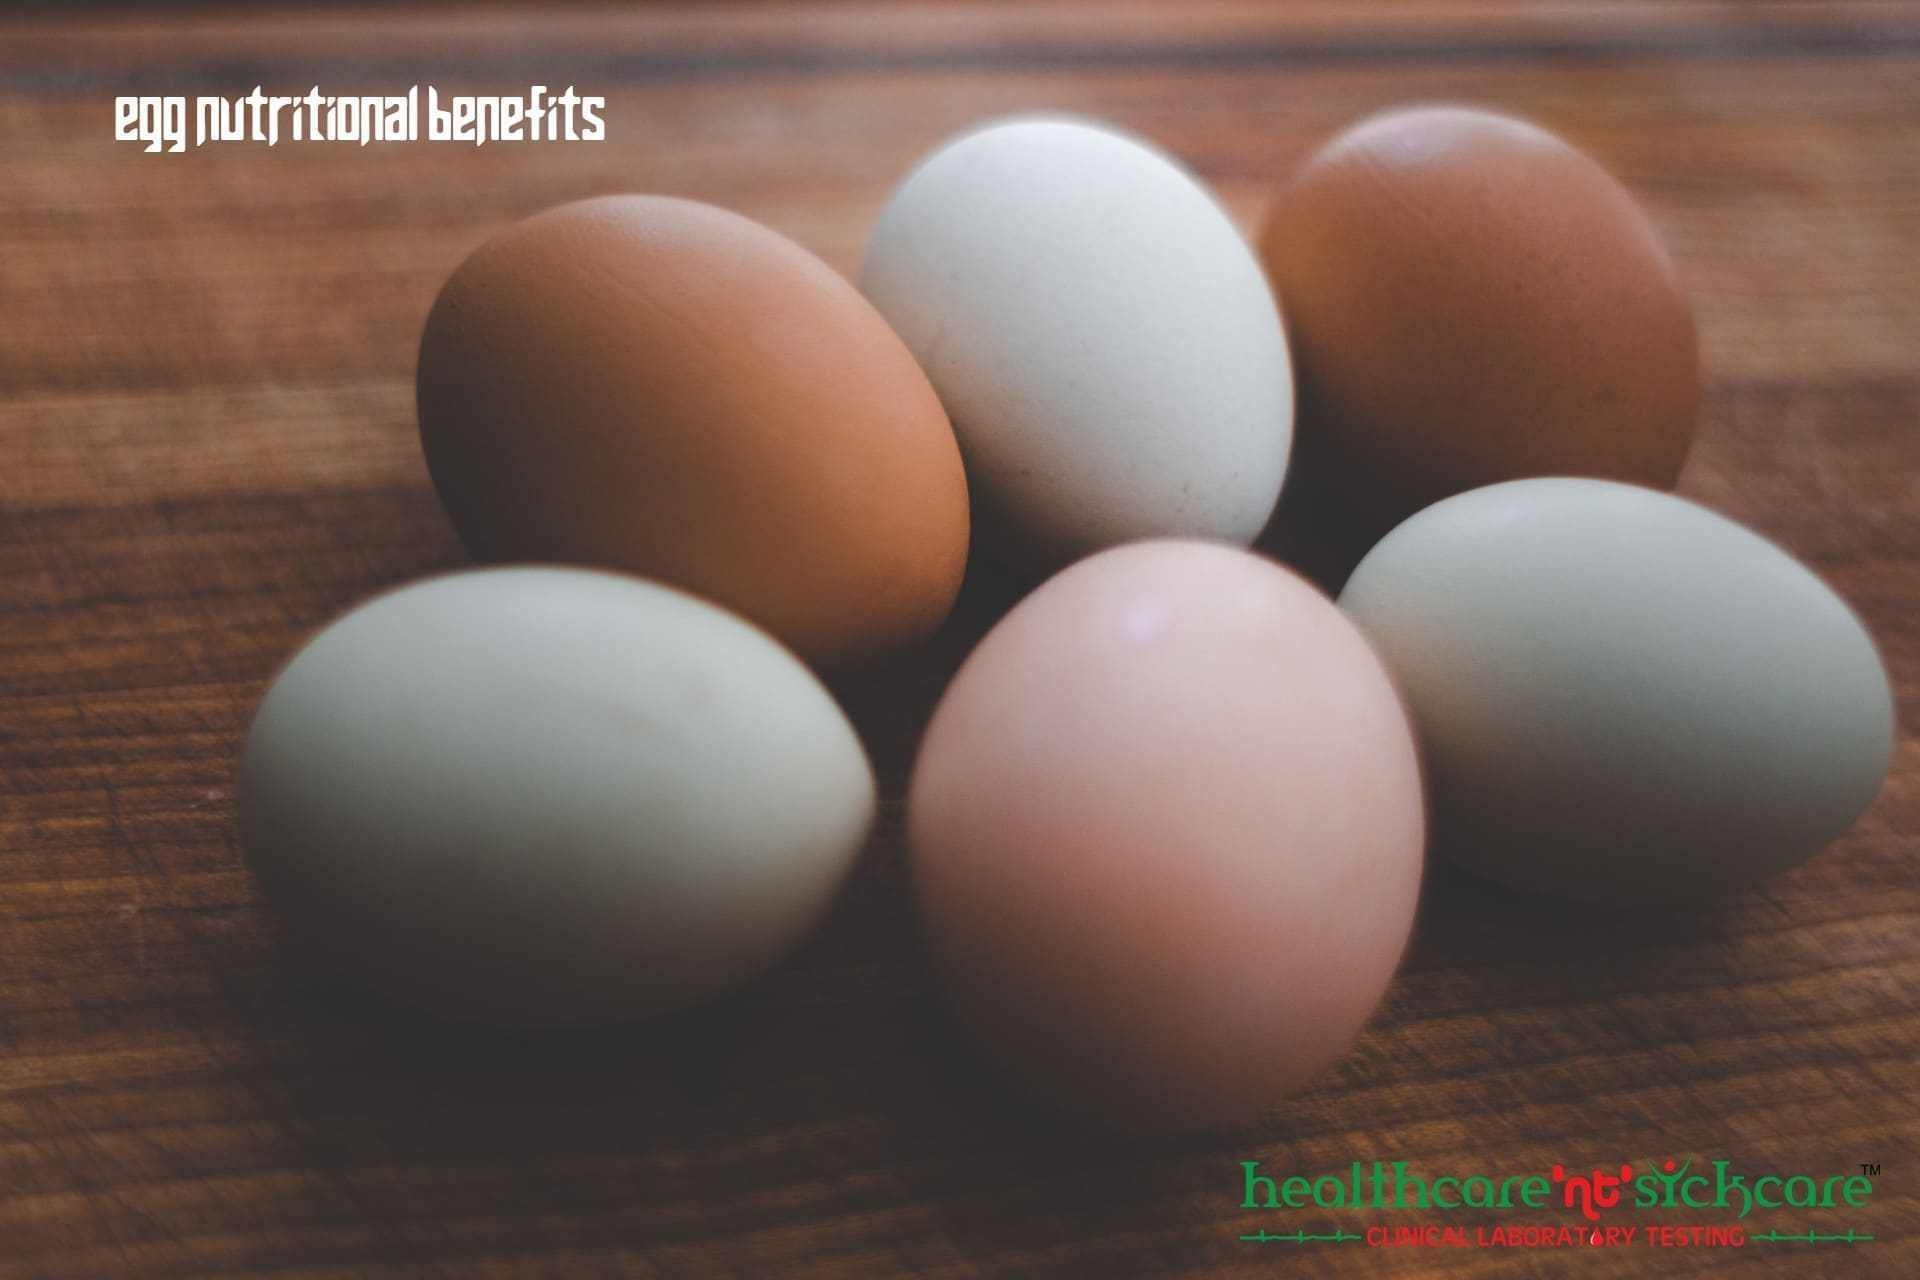 Egg Nutrition #boiledeggnutrition Egg Nutritional Benefits Eggs are spoken of as both very healthy and nutritious and very …   Egg Nutrition Read More » The post Egg Nutrition appeared first on healthcare nt sickcare. #eggnutritionfacts Egg Nutrition #boiledeggnutrition Egg Nutritional Benefits Eggs are spoken of as both very healthy and nutritious and very …   Egg Nutrition Read More » The post Egg Nutrition appeared first on healthcare nt sickcare. #eggnutritionfacts